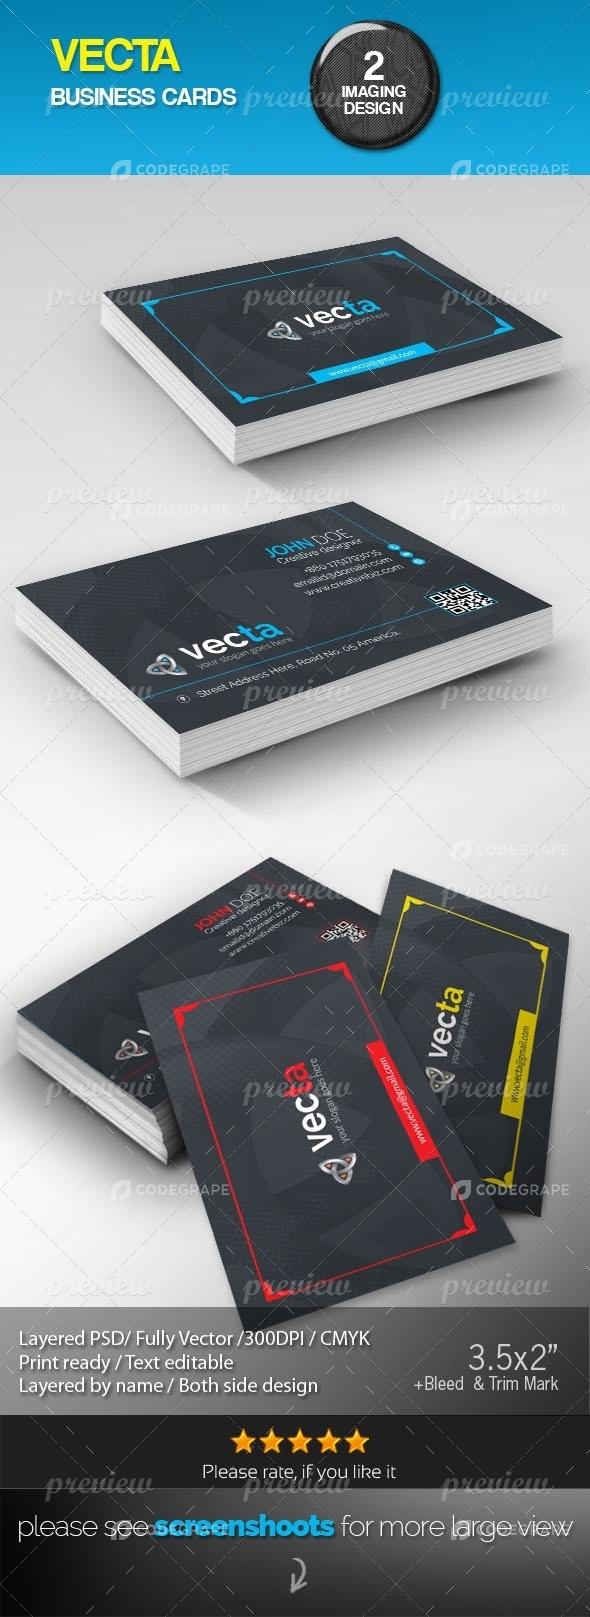 Vecta Corporate Creative Business Cards